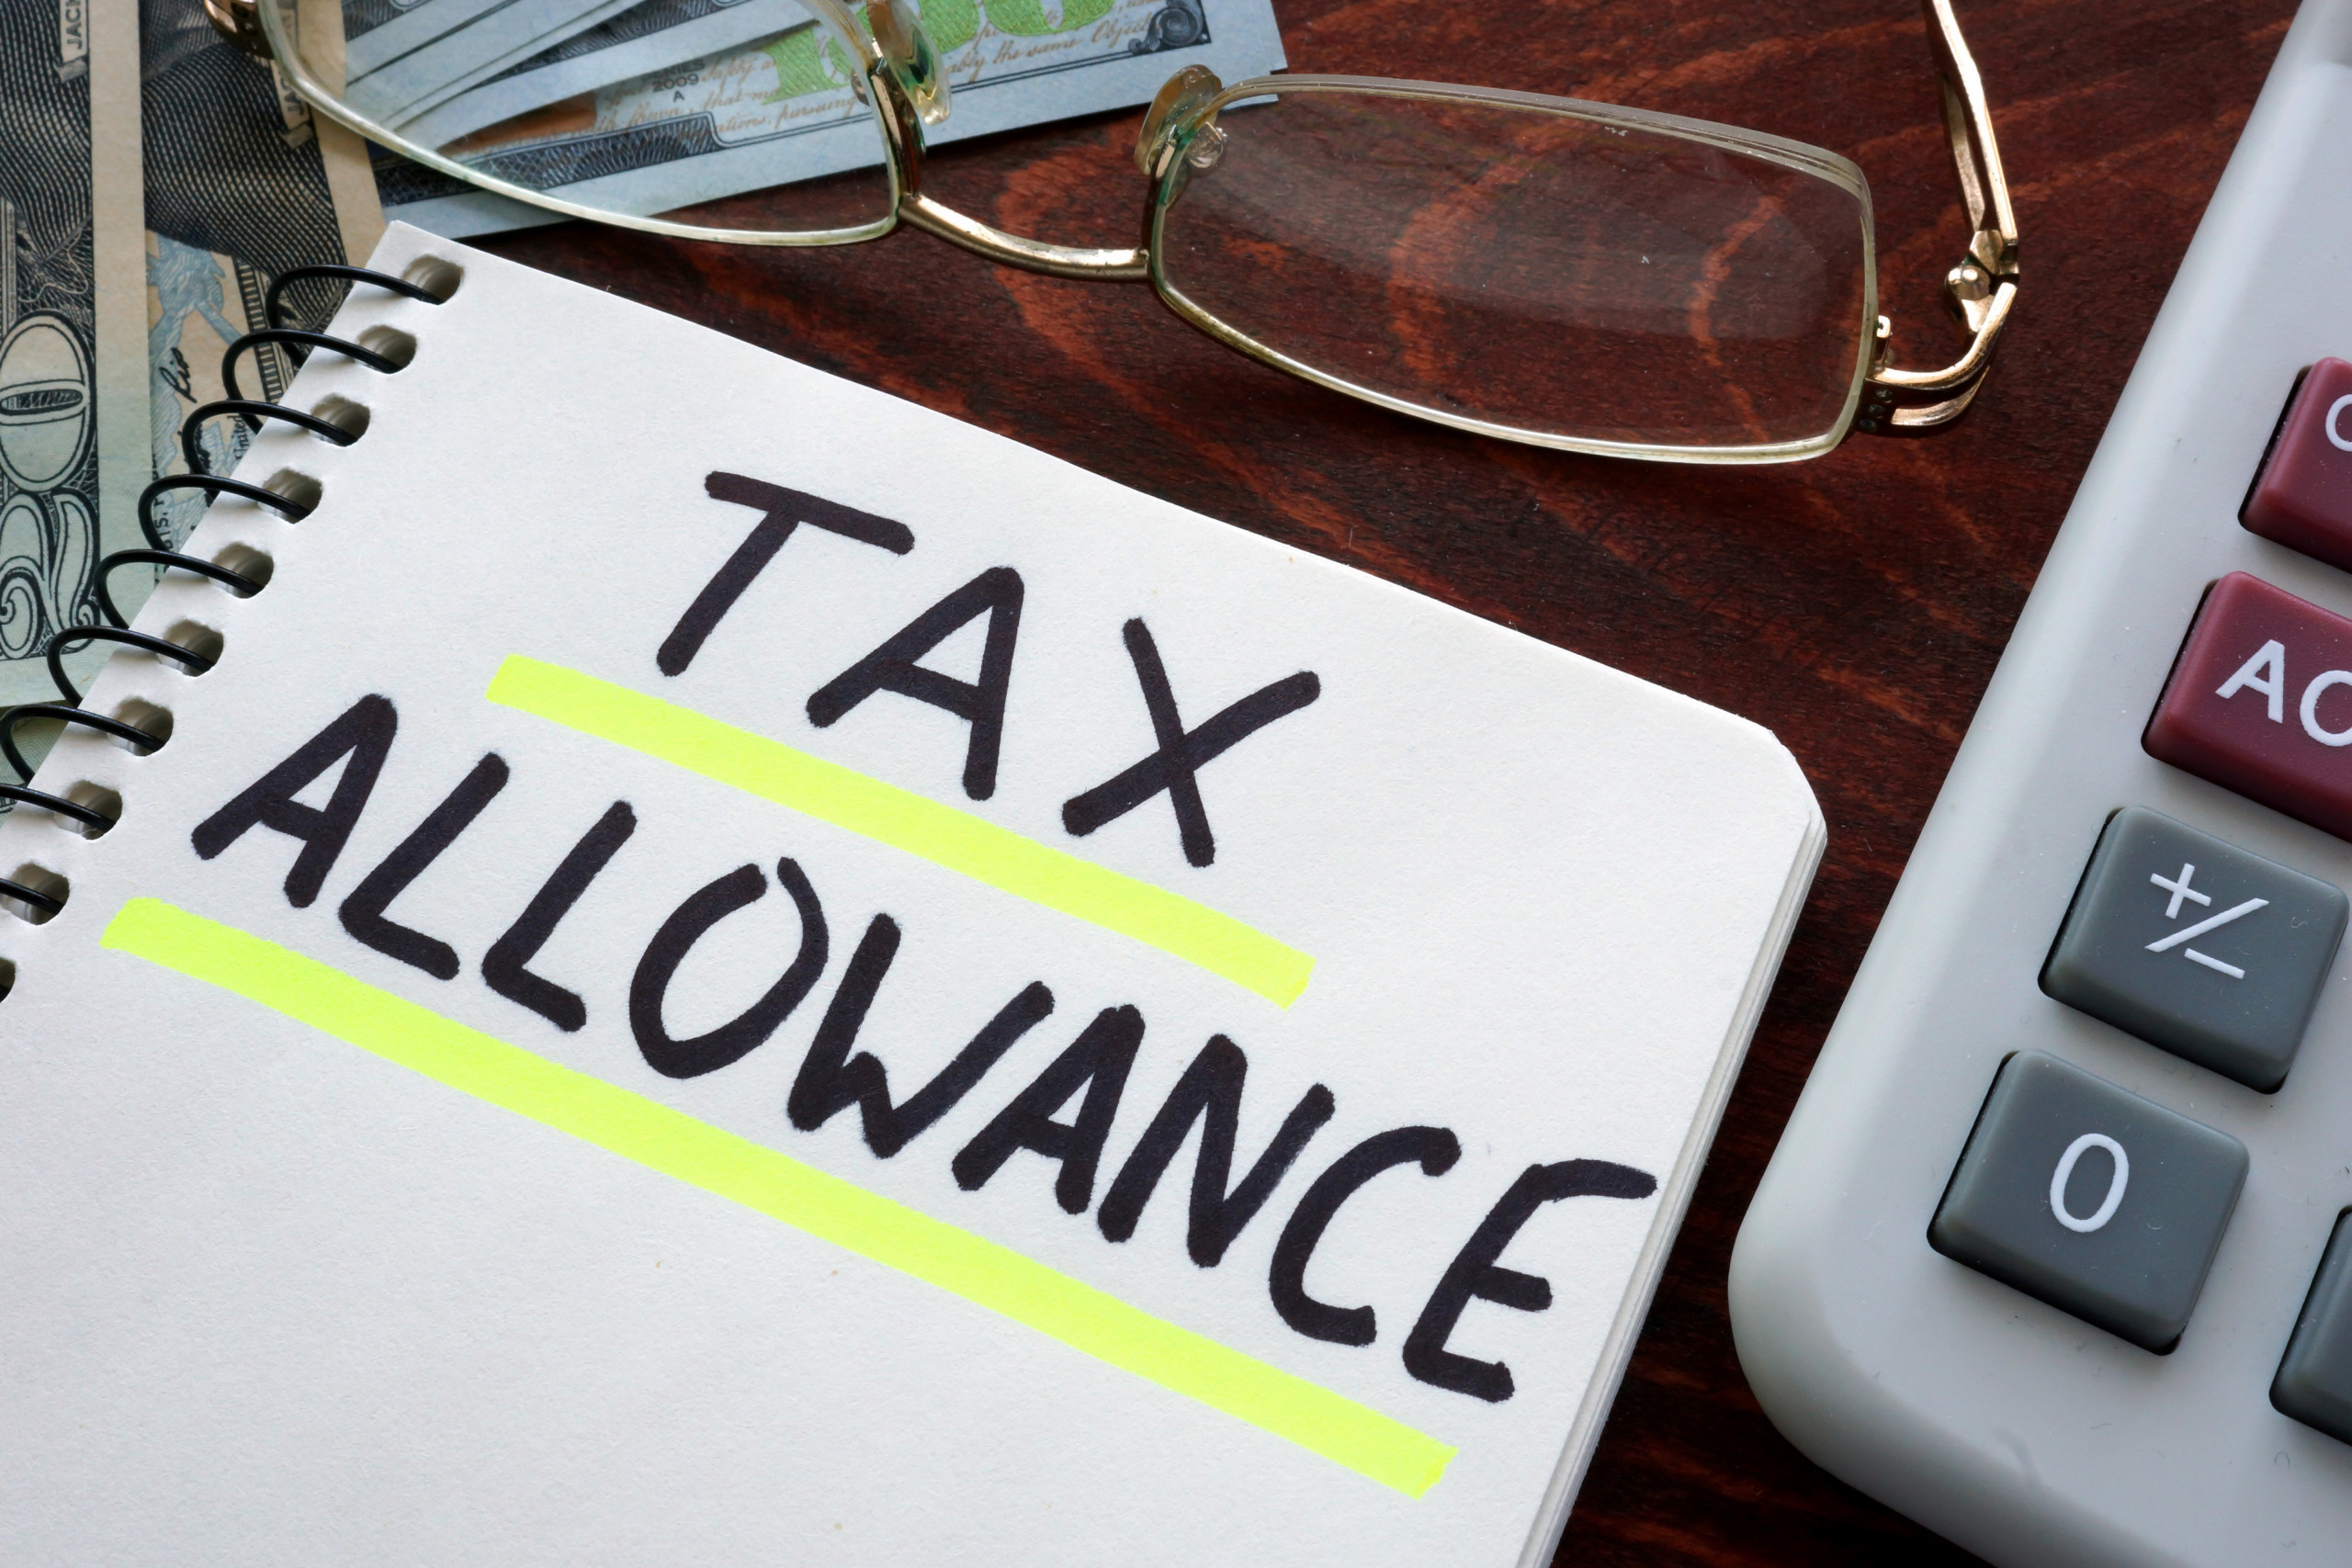 Strategic Tax services, self assessment tax, VAT, tax, tax allowance